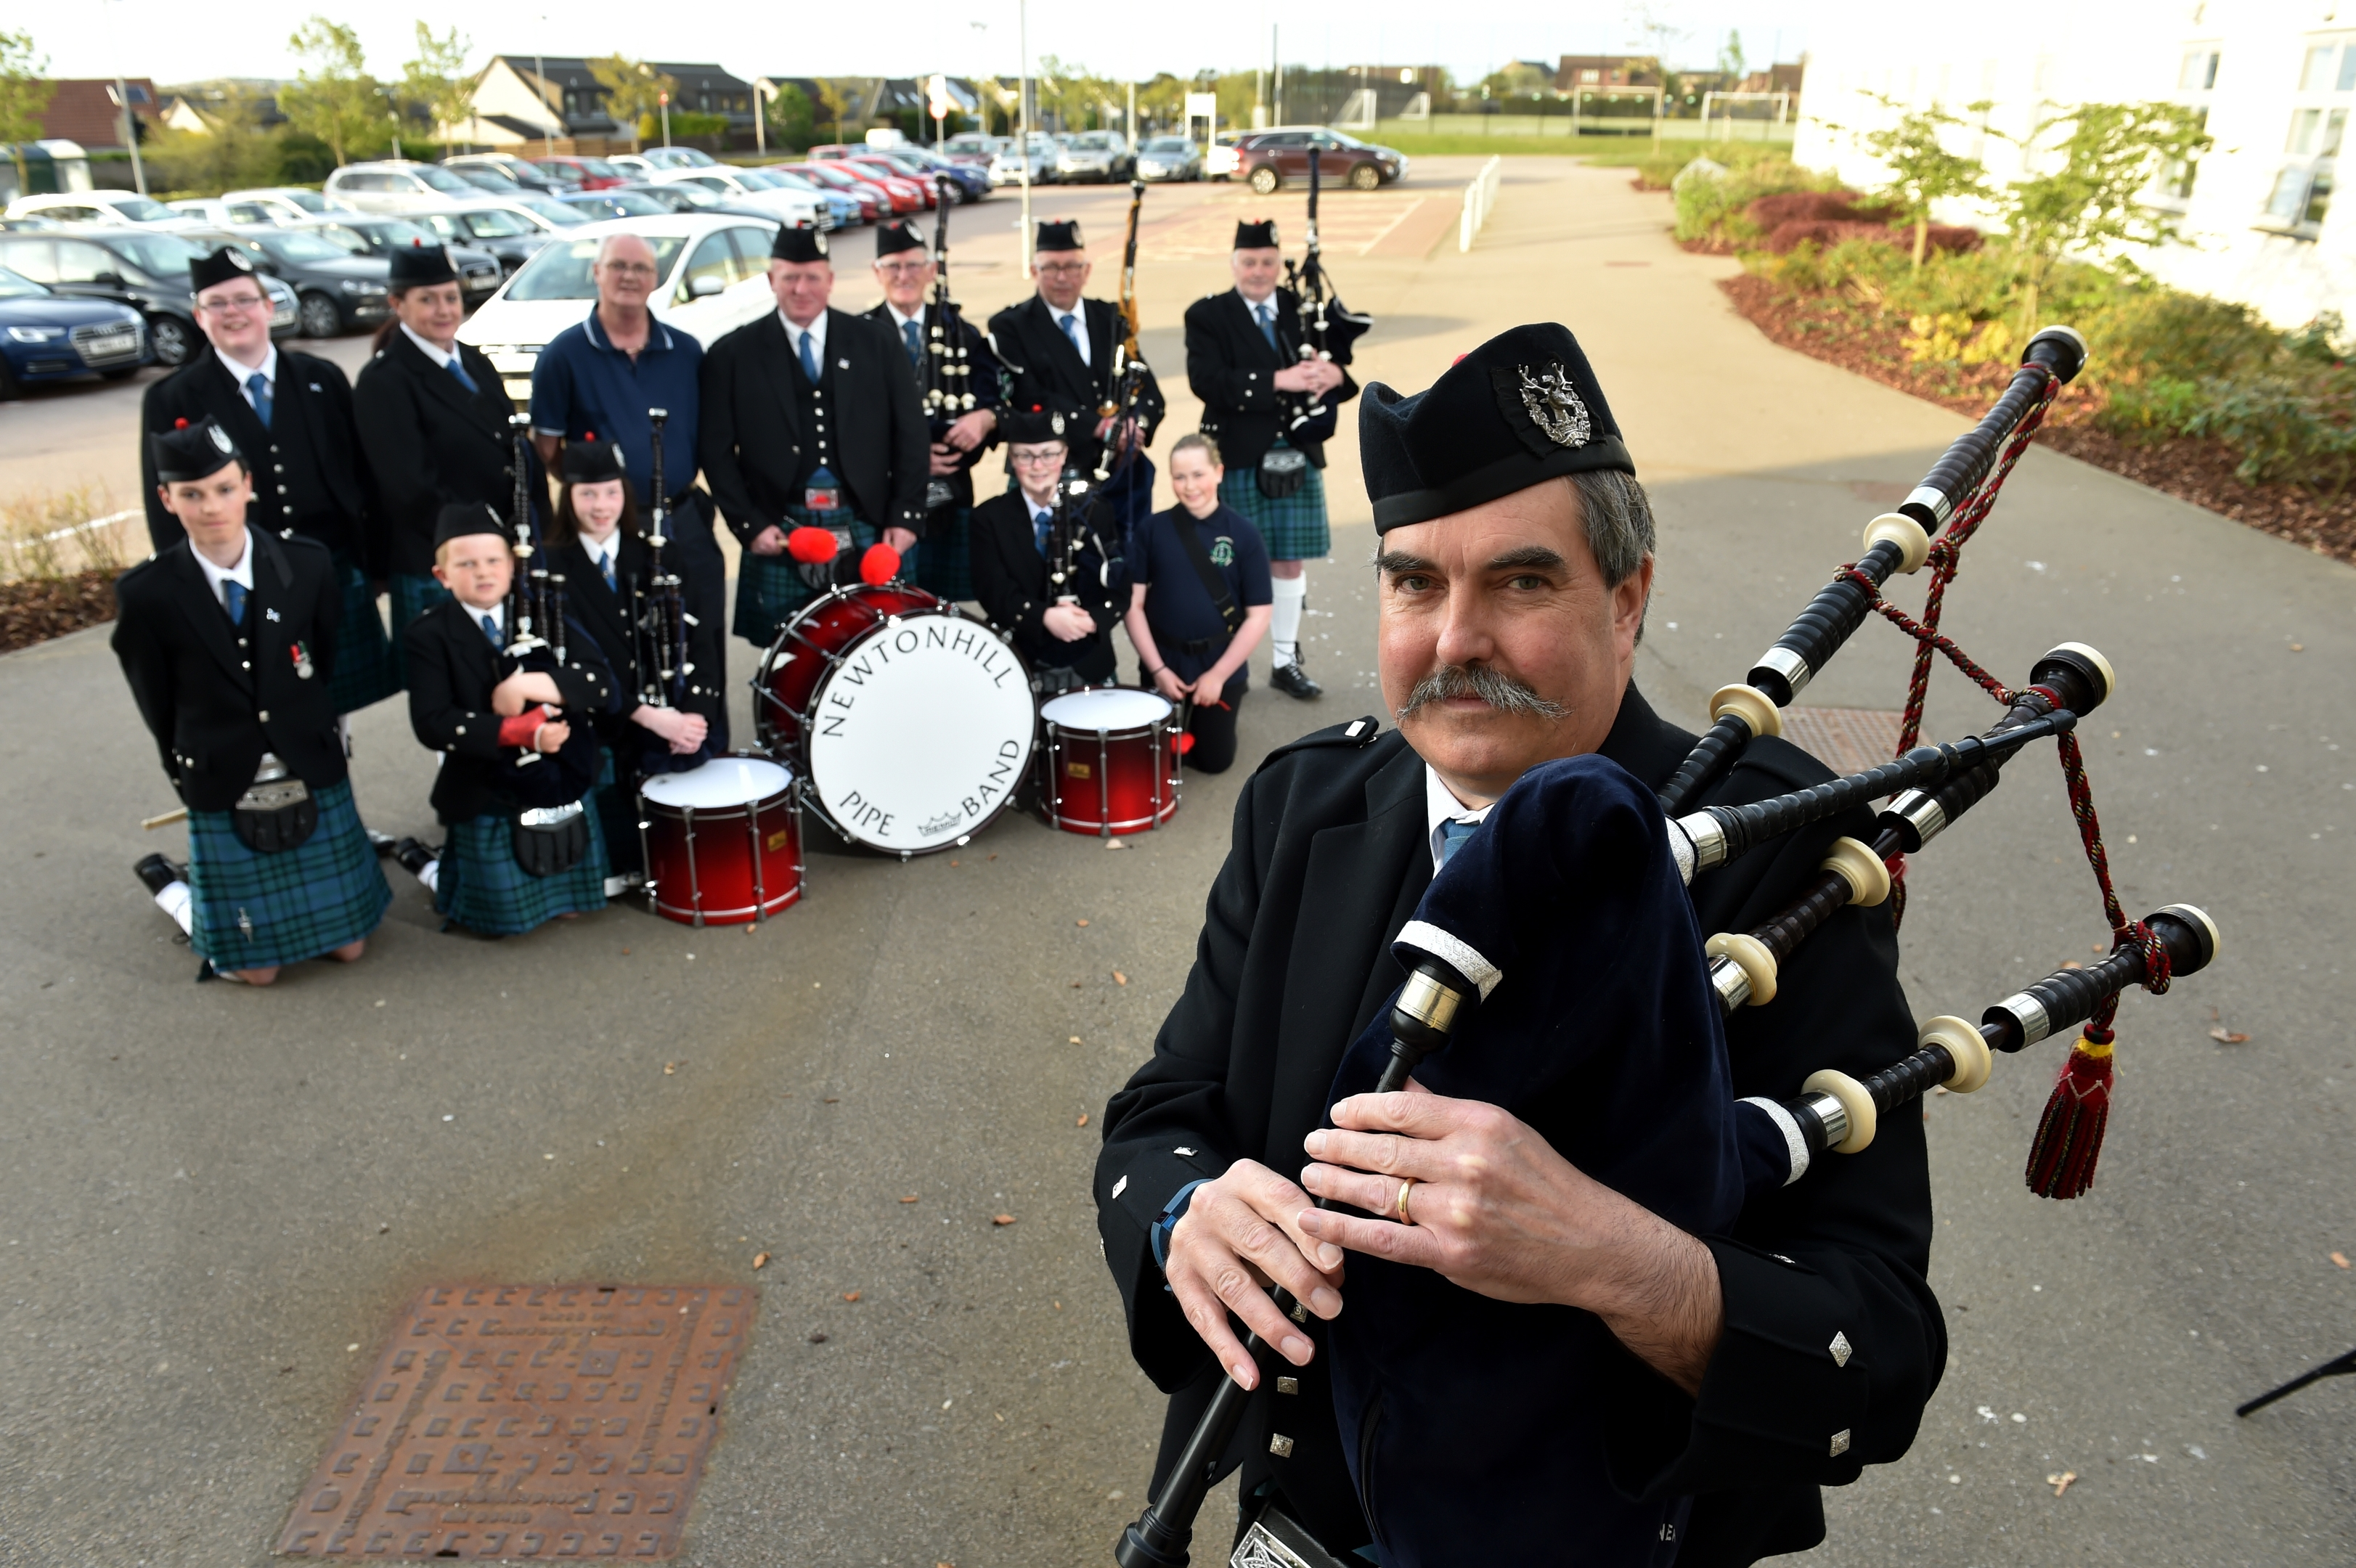 Domhnull Mclennan and some of the pipe band. Picture by Kenny Elrick.